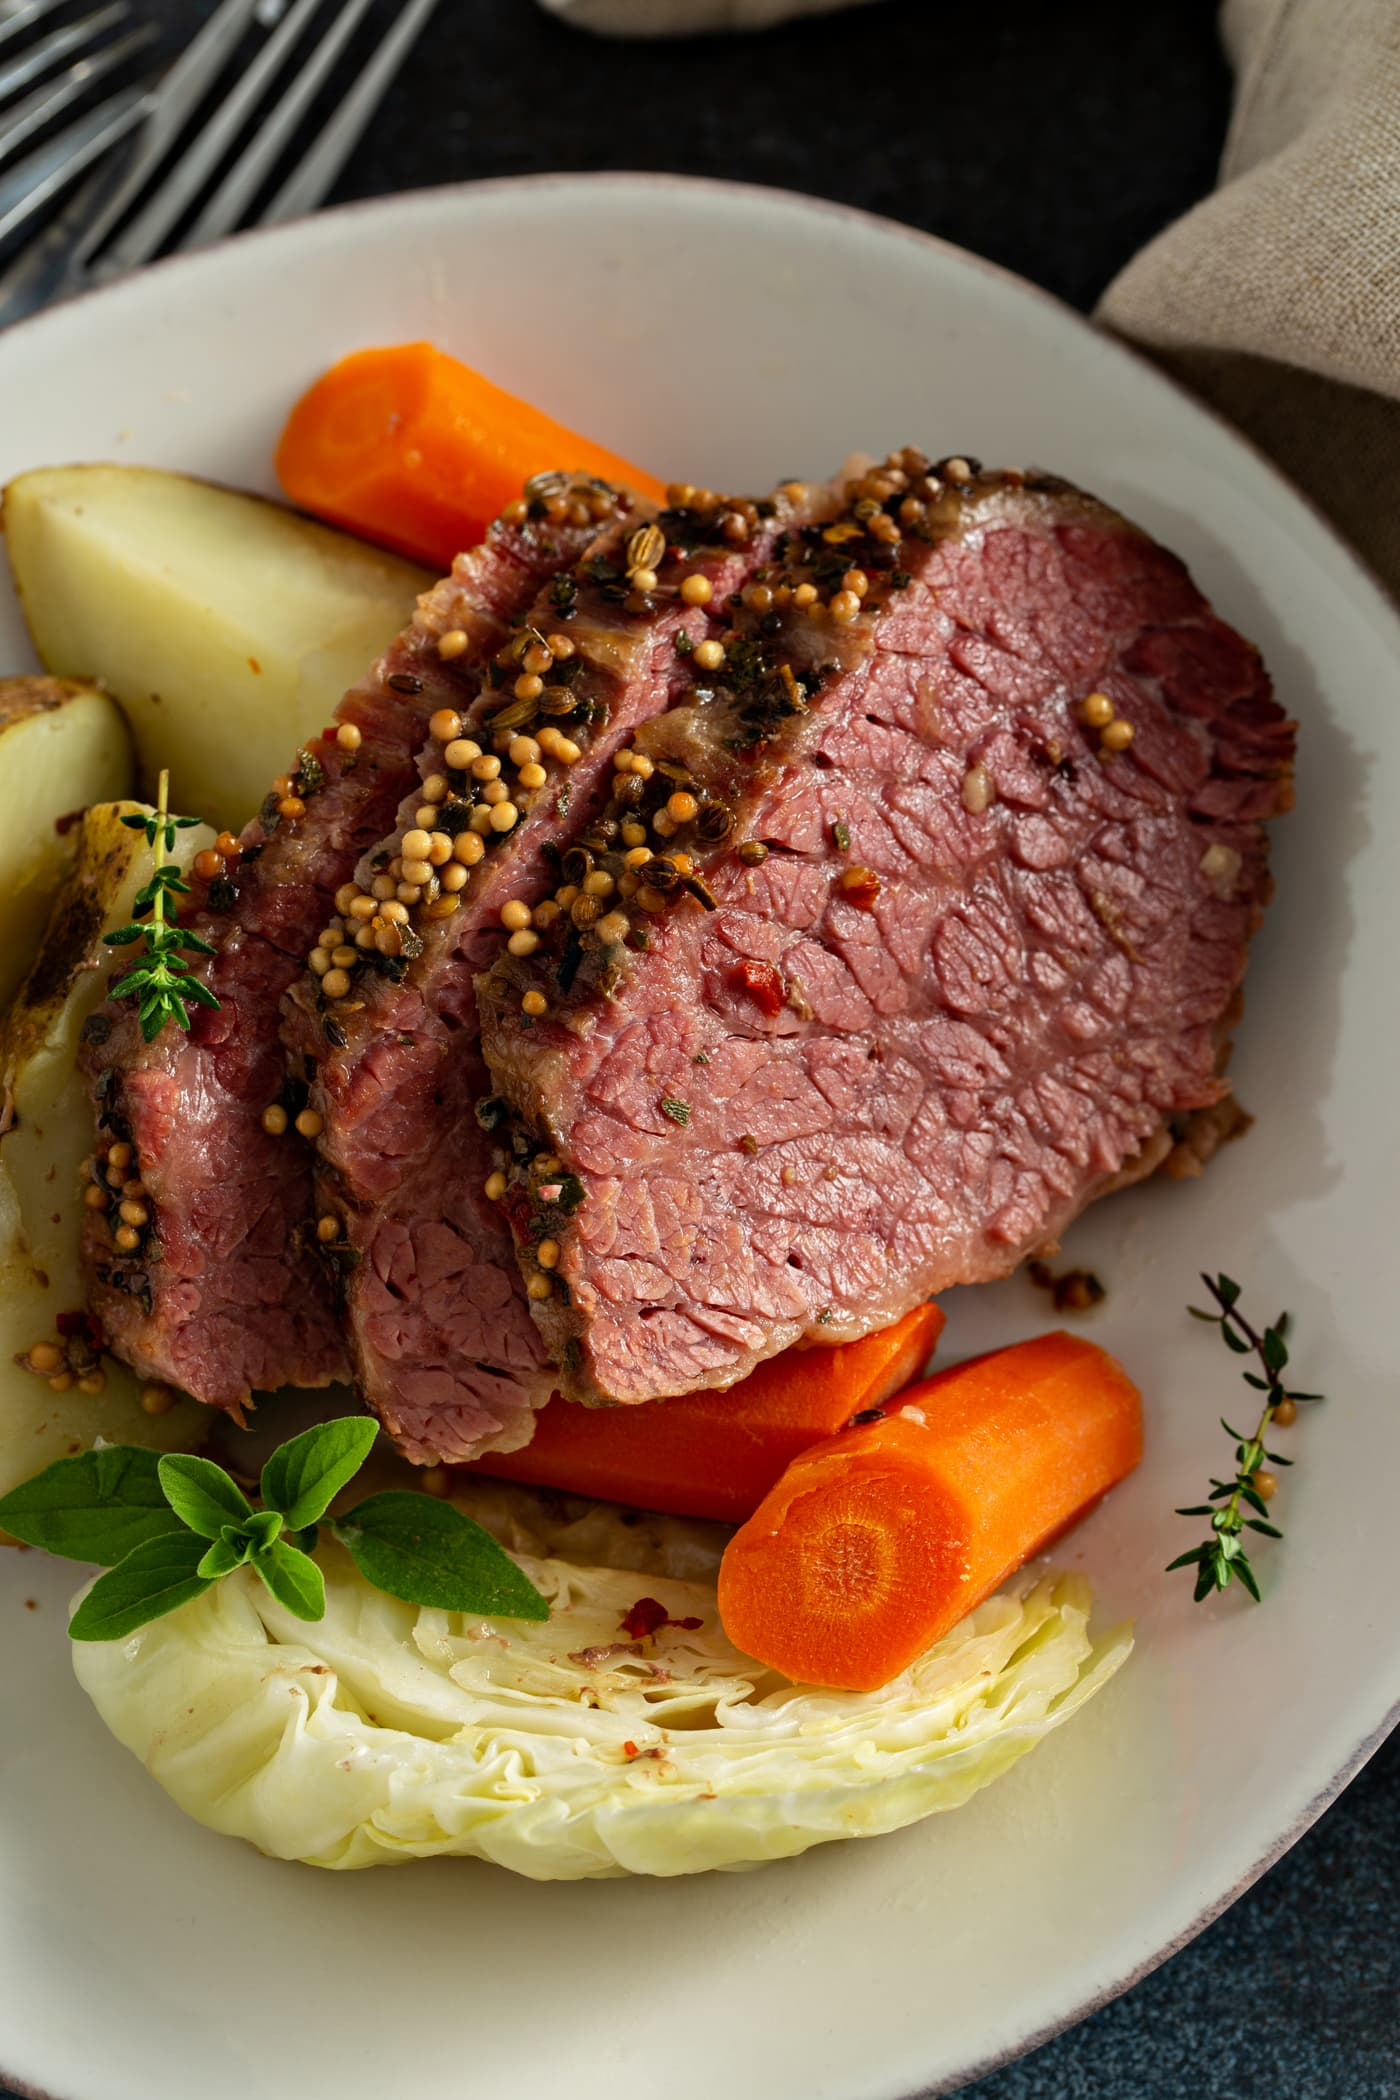 Three slices of corned beef with carrots and potatoes and cabbage on a white plate.